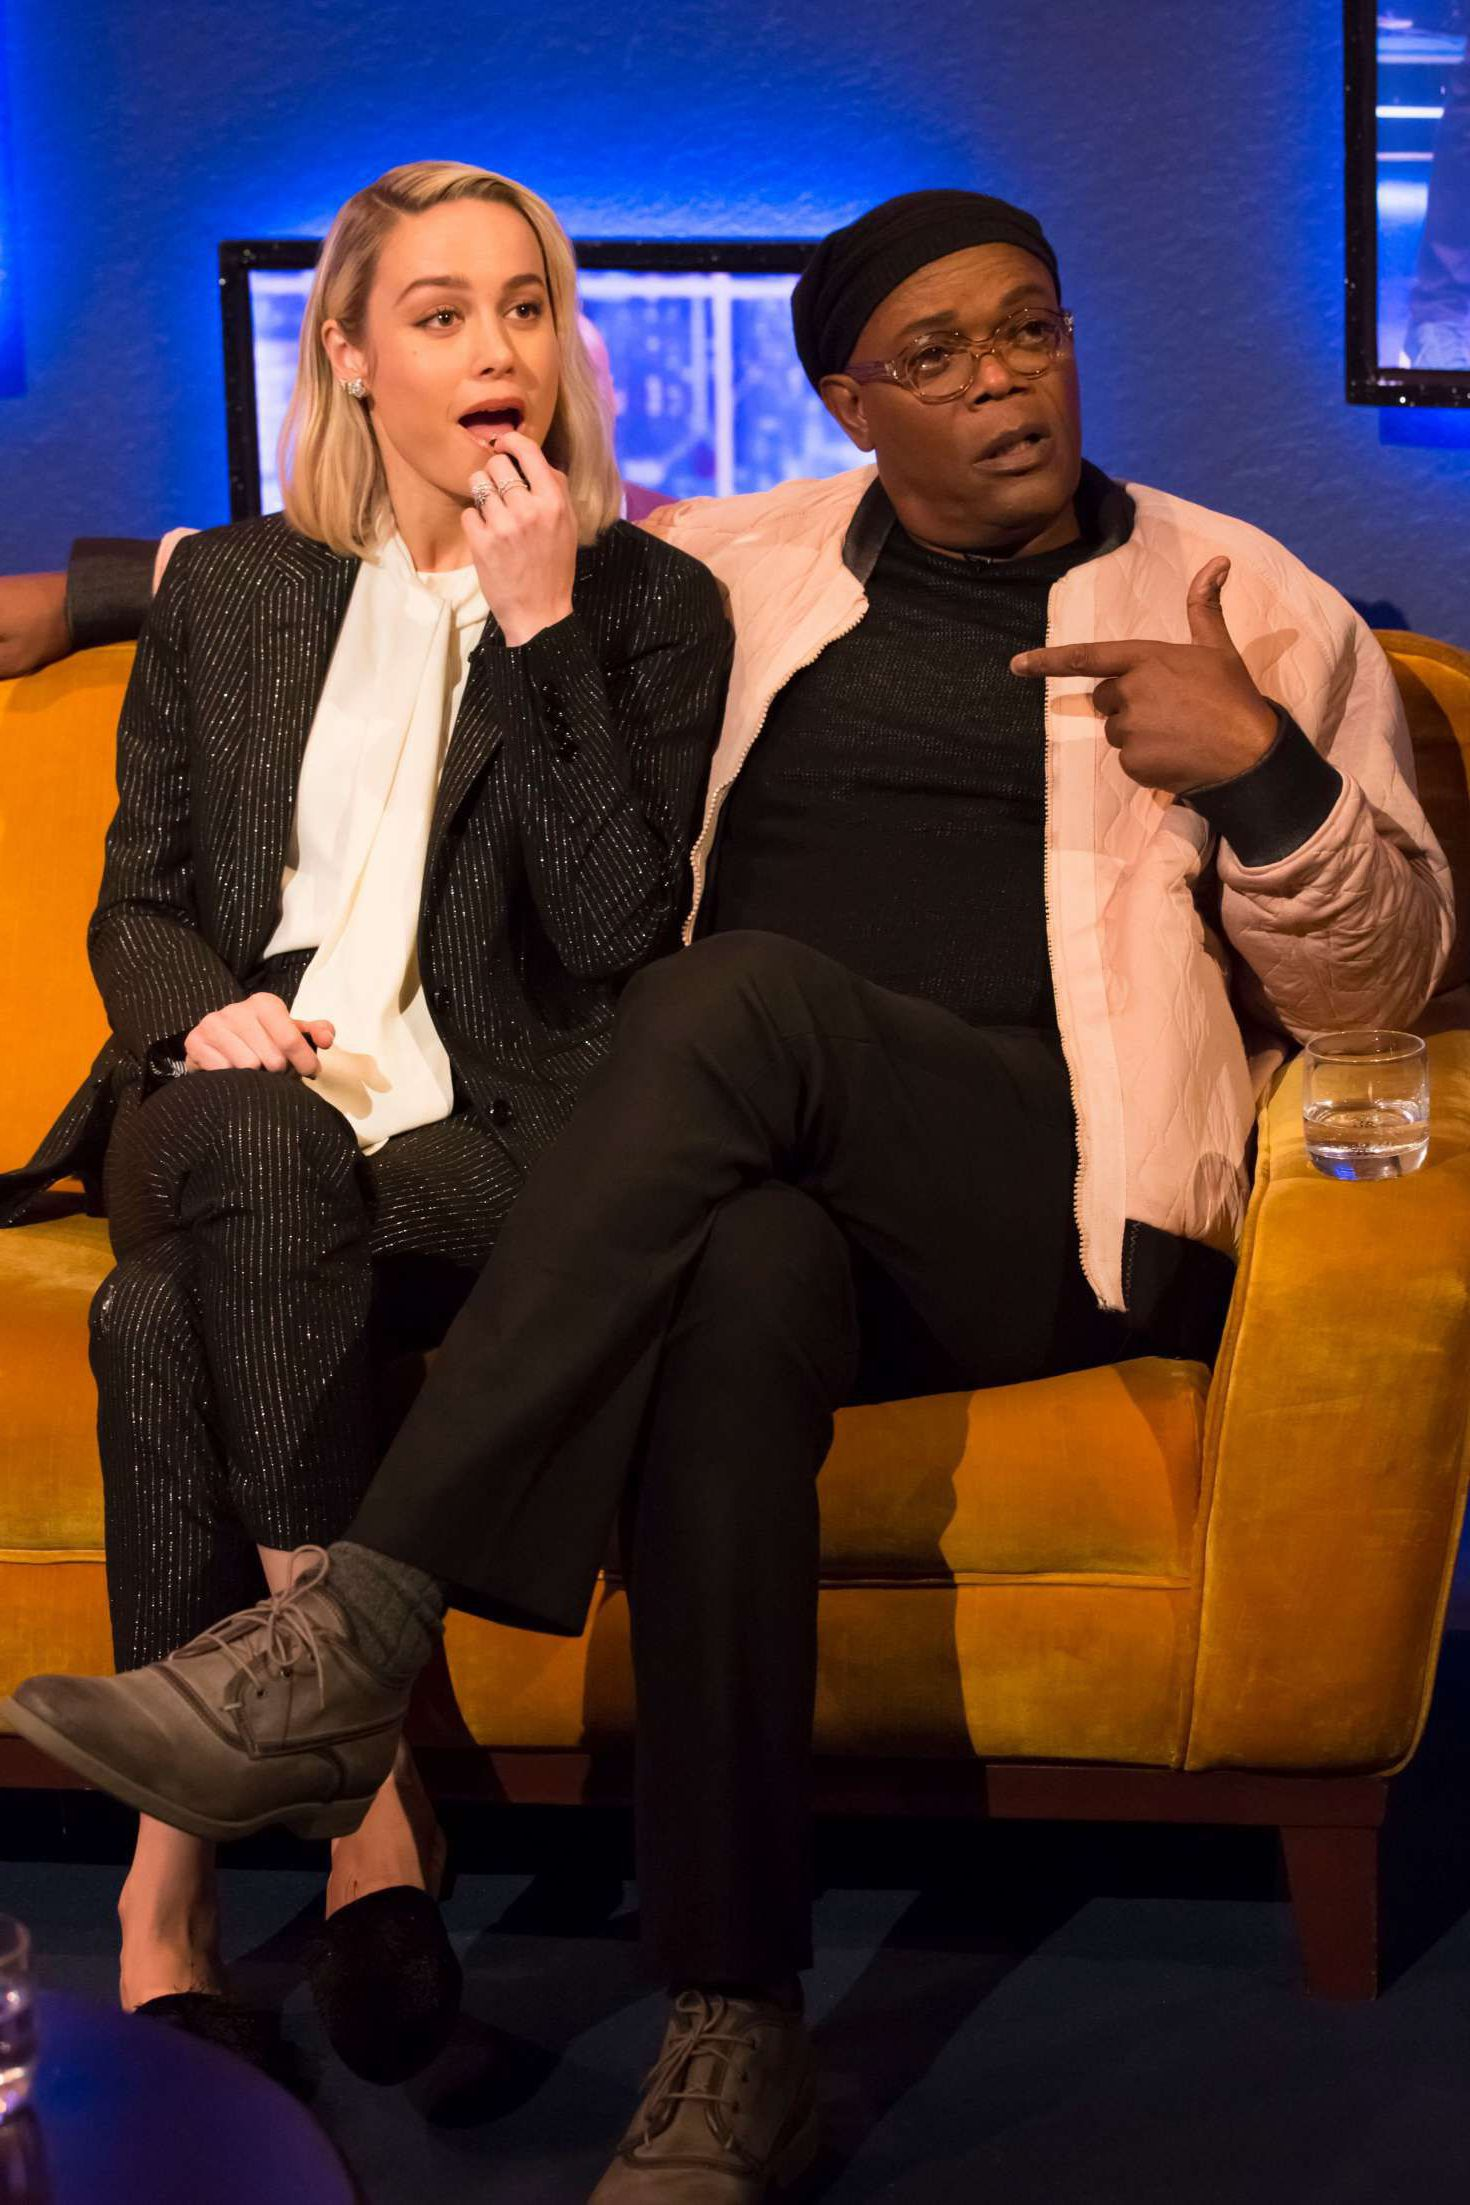 surprised Brie Larson and Jonathan Ross